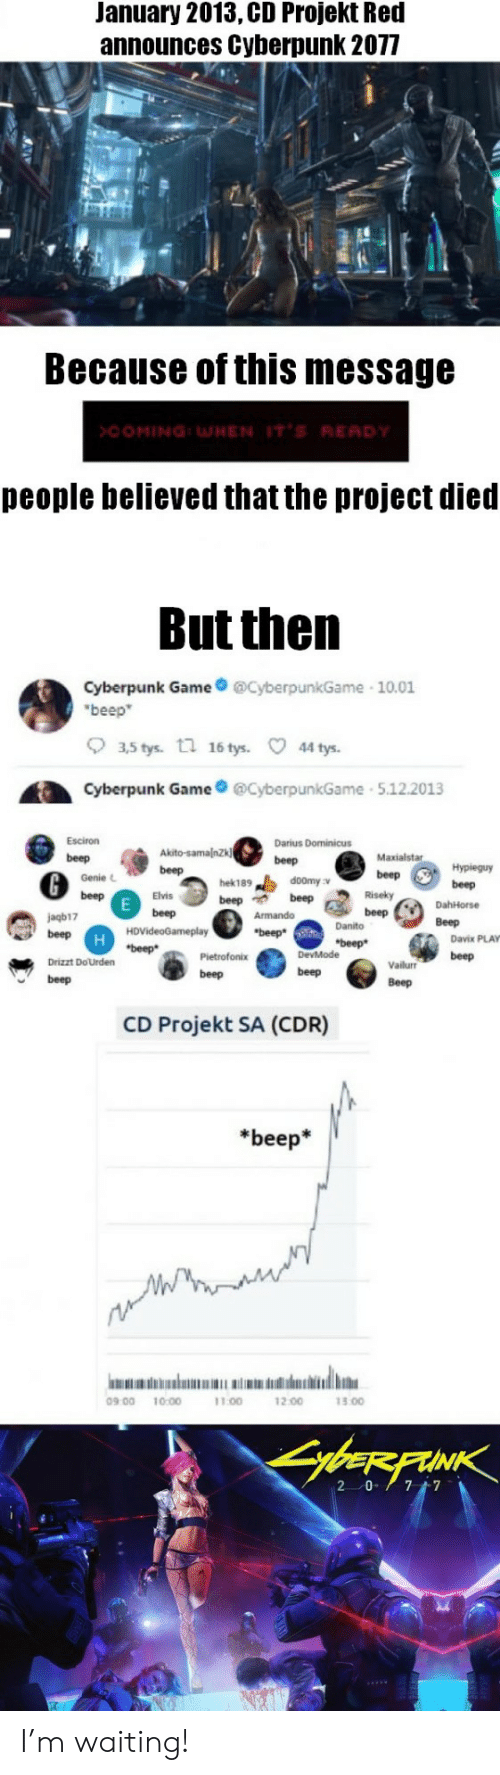 Game, Waiting..., and Darius: January 2013, CD Projekt Red  announces Cyberpunk 2077  Because of this message  >COMING:WHEN IT'S RE  people believed that the project died  But then  Cyberpunk Game@CyberpunkGame 10.01  beep  。35tys.  n  16 tys.  44 tys.  Cyberpunk GameyberpunkGame 5.122013  @beGen.bete  Esciron  Darius Dominicus  beep m.e: se-,  Maxialstar  Genie L  hek189  doomy v  Elvis  jagb17  Danito  Davix PLAY  Vailur beep  Beep  Drizzt DoUrden  beep  beep  beep  CD Projekt SA (CDR)  *beep*  09 00 10:00  11.00  12.00  13.00 I'm waiting!